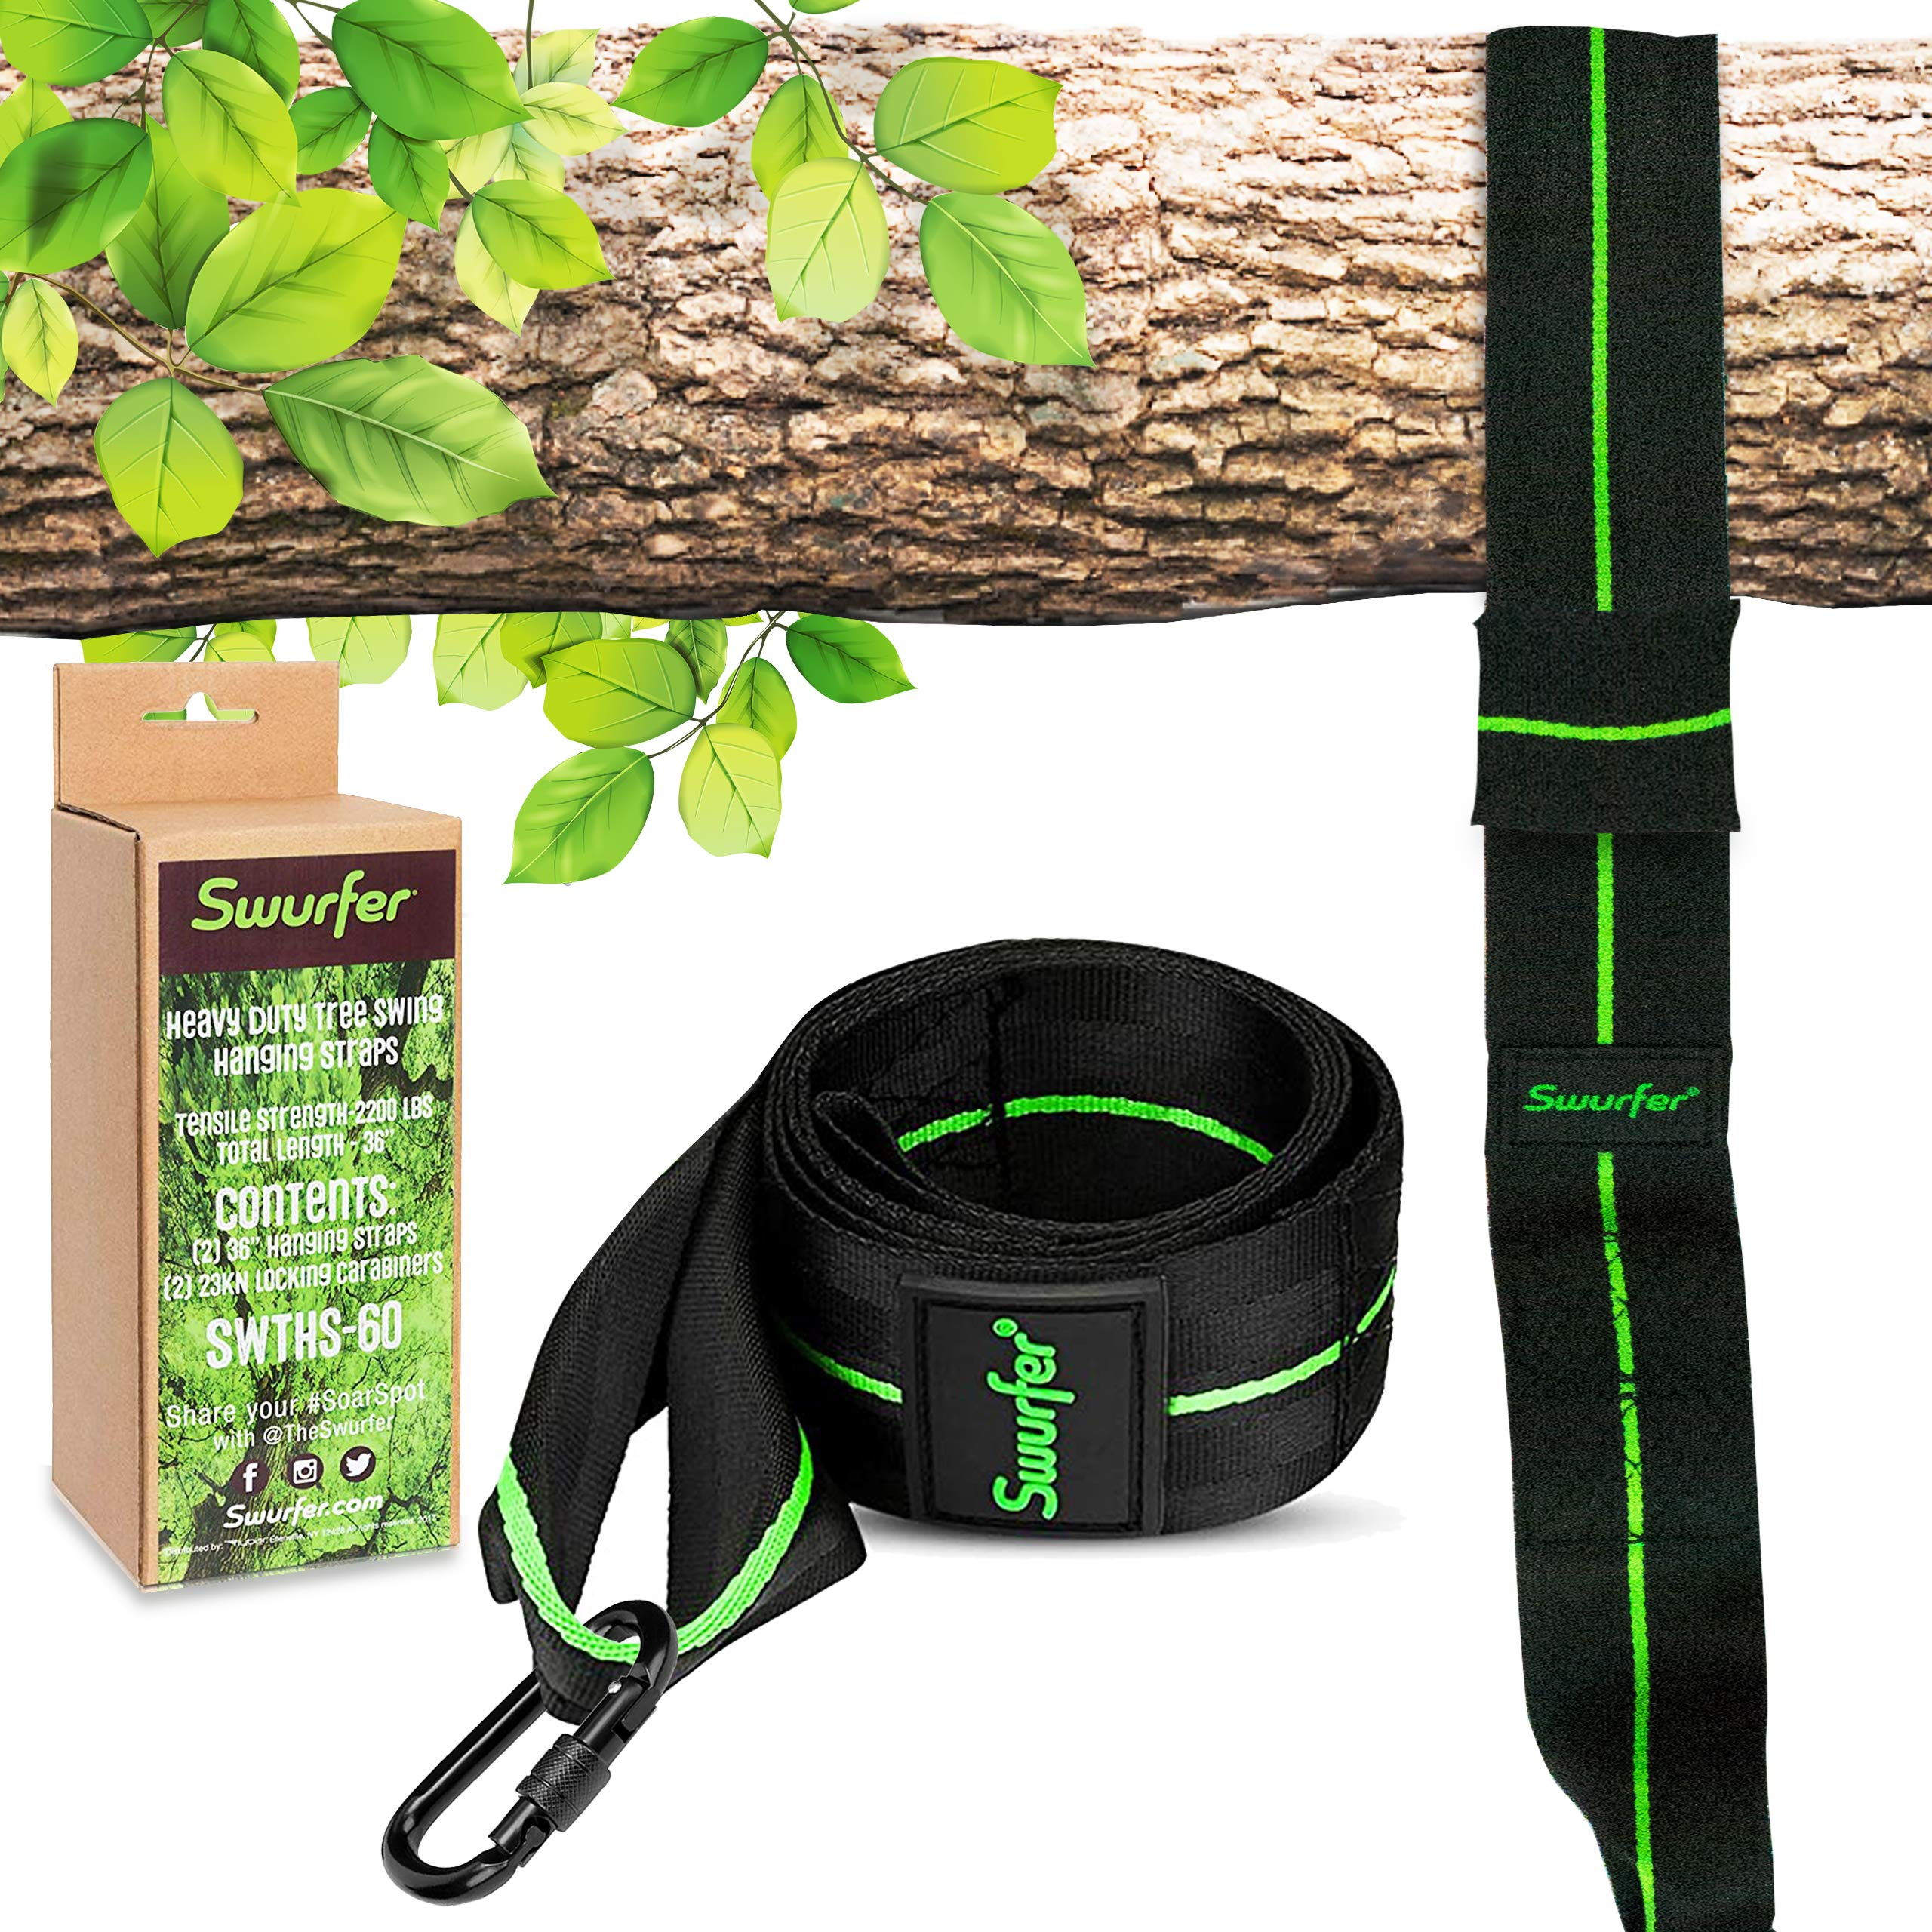 Swurfer 10ft Tree Swing Straps Hanging Kit - Durable Weatherproof Tree Attachment Strap - Includes 1 Industrial Strength Safe Locking Carabiner, Holds 2000 Lbs - Hang Any Swing or Hammock